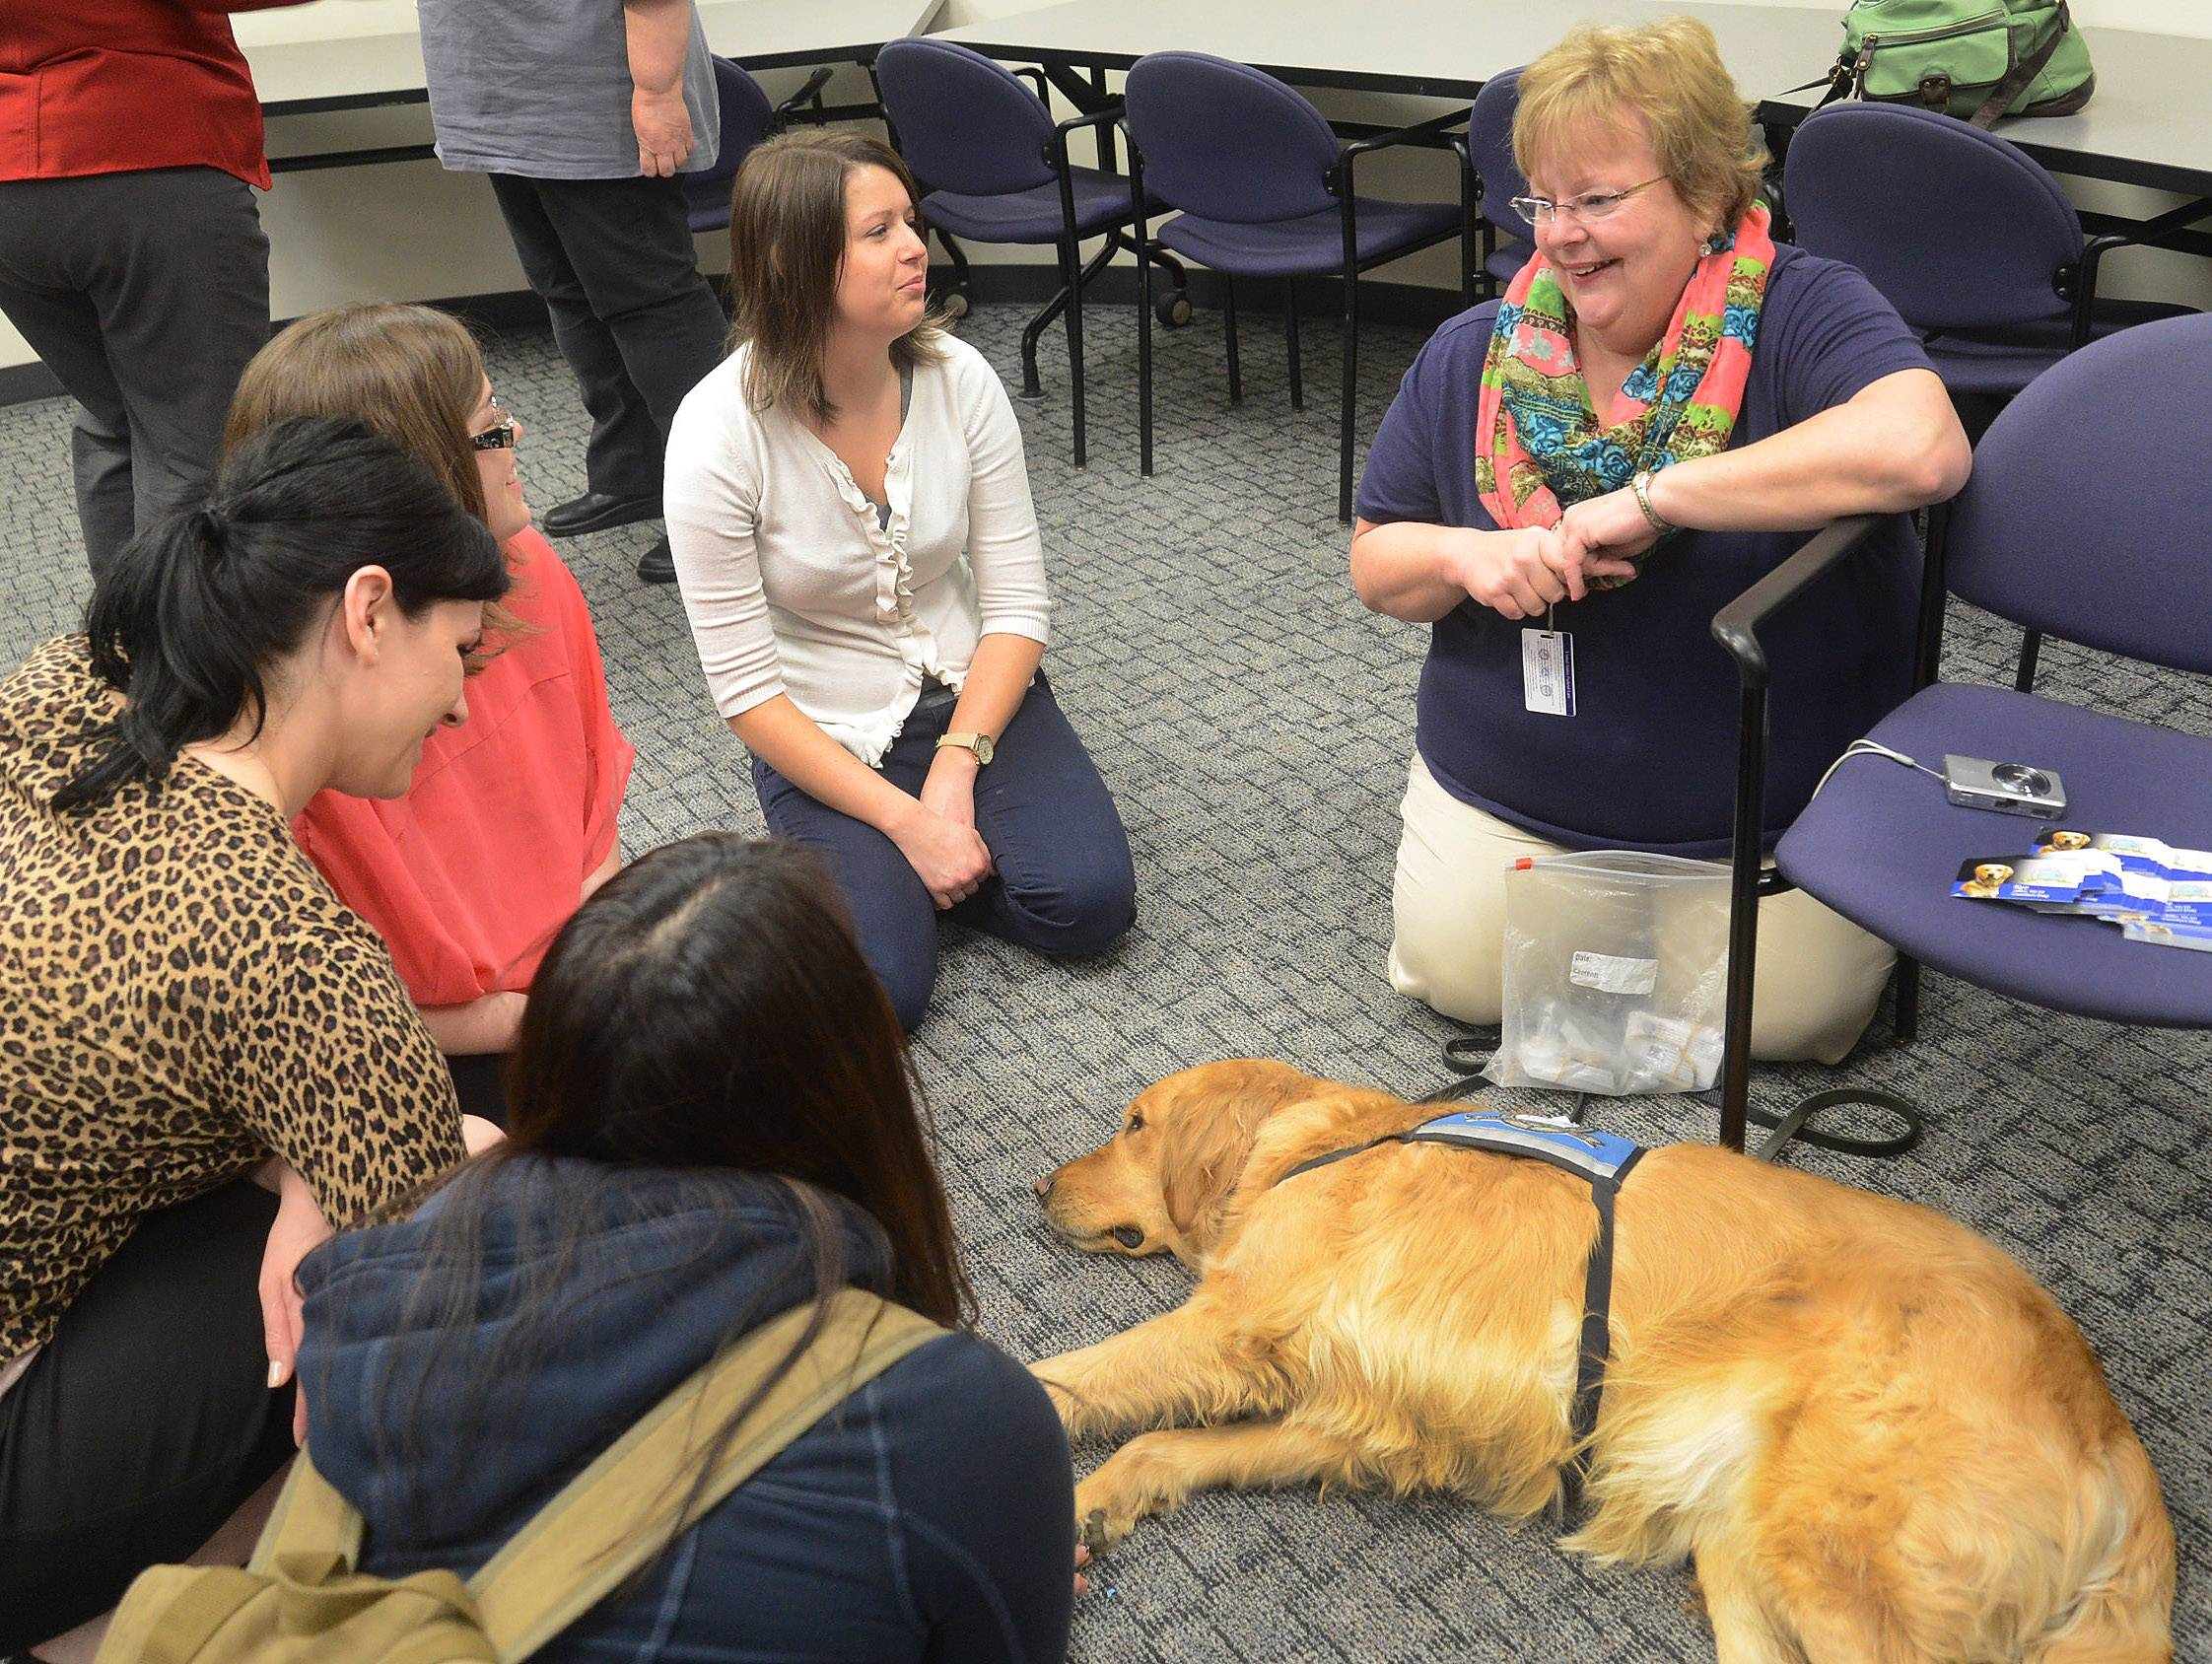 Comfort Dogs handler Libby Robertson shows off Kye, deployed Wednesday to the campus of Harper College to help de-stress students ahead of next week's finals.